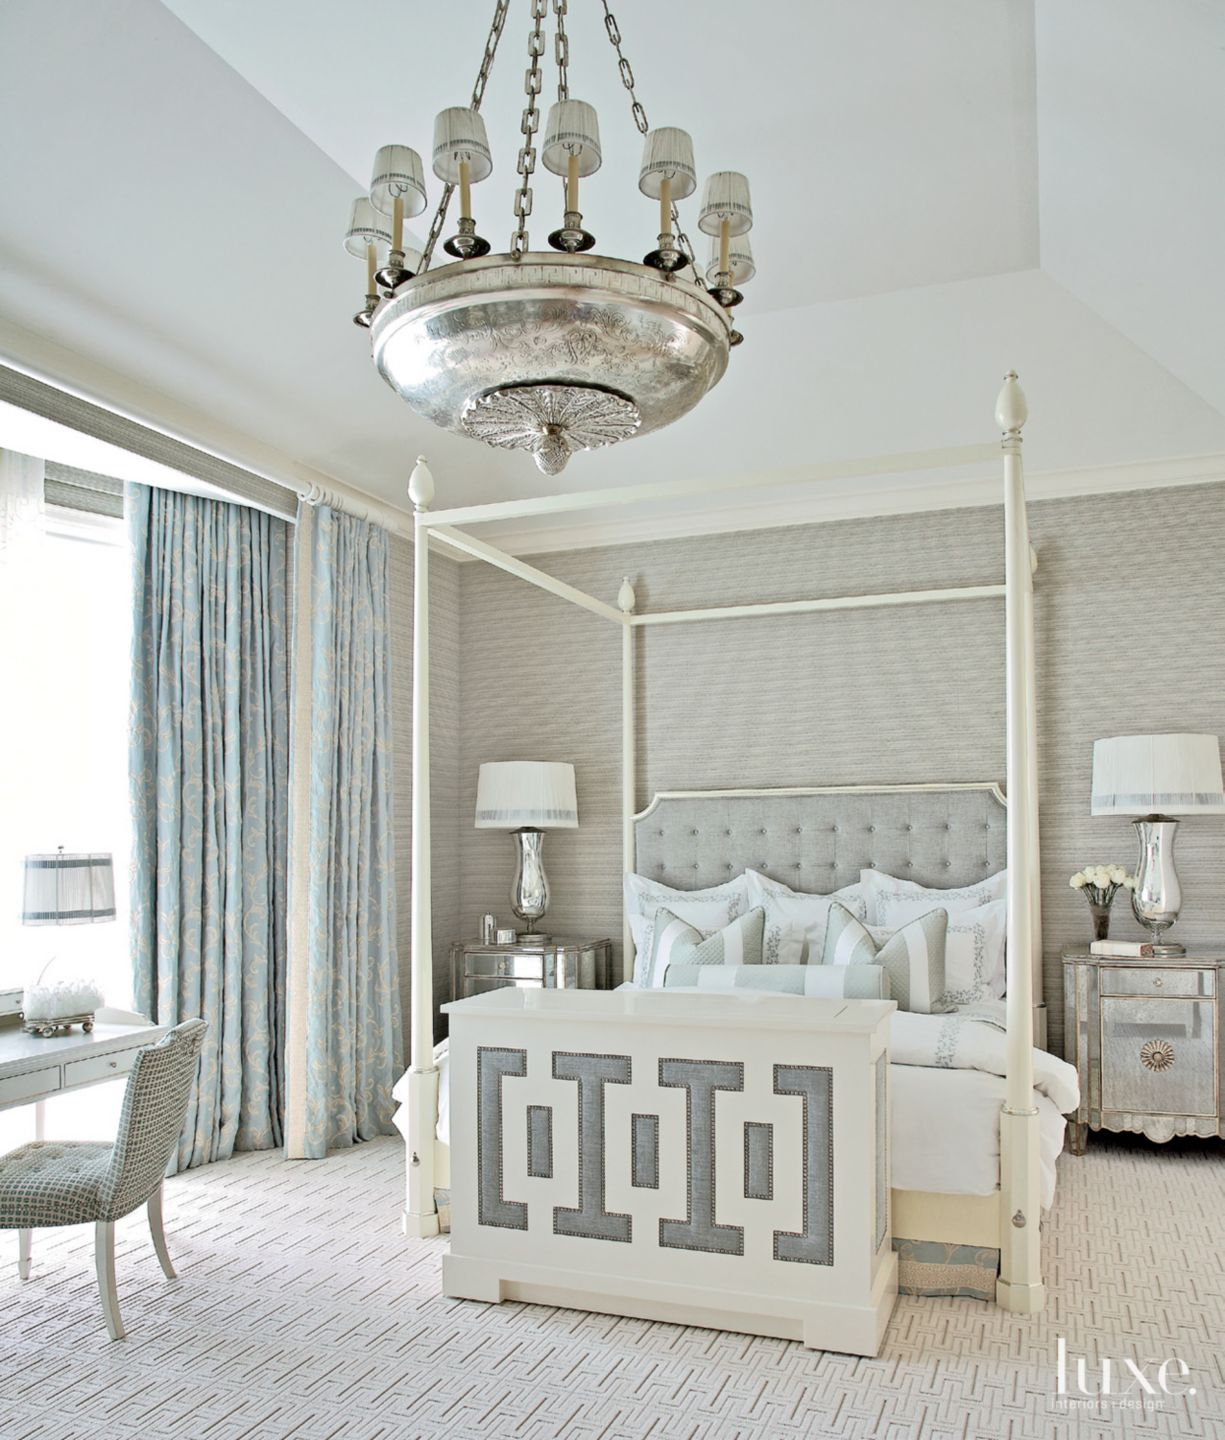 Eclectic Gray Bedroom with Ornate Chandelier